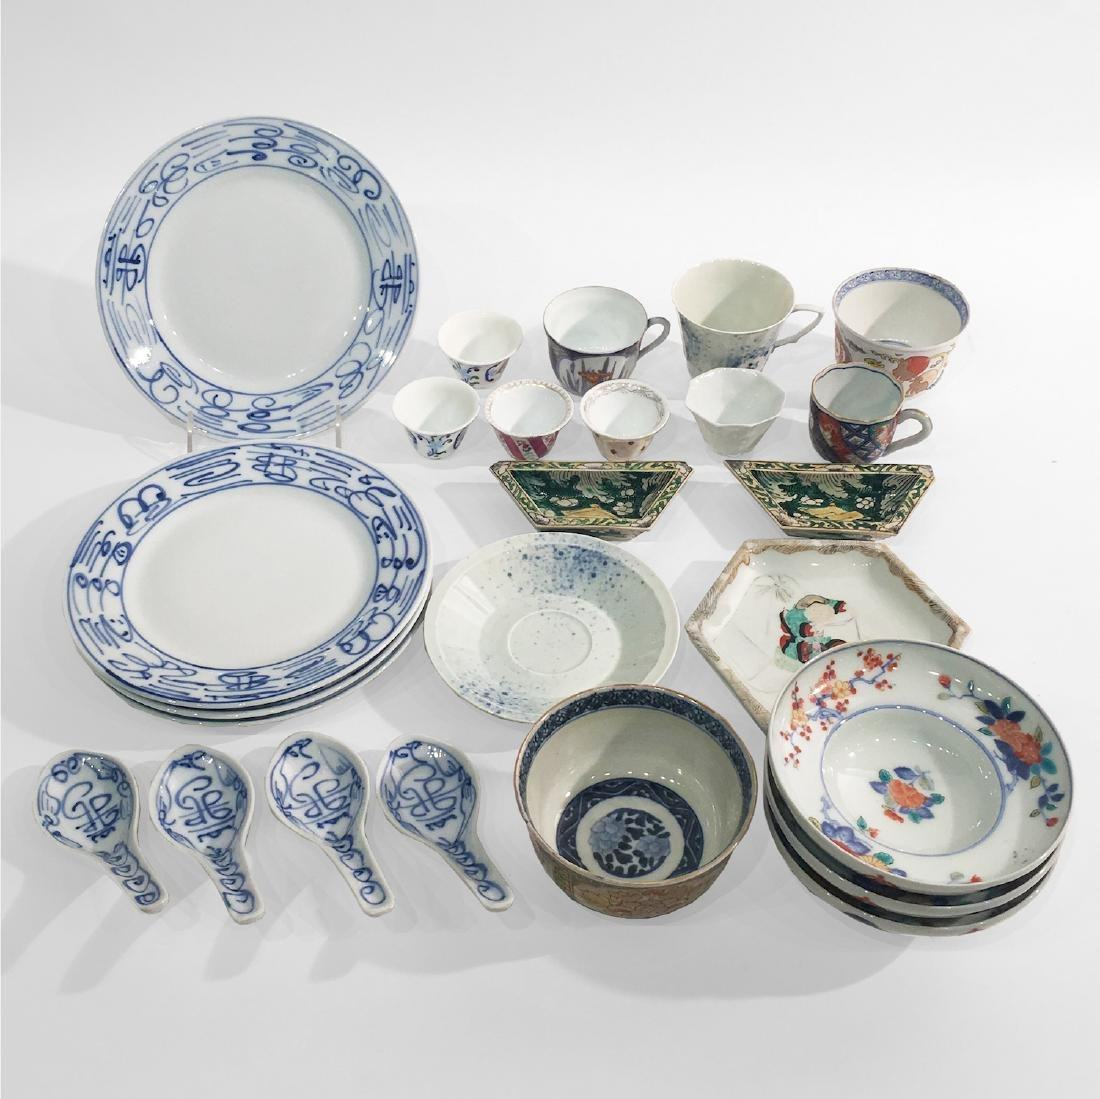 Mixed Lot of Asia Porcelain